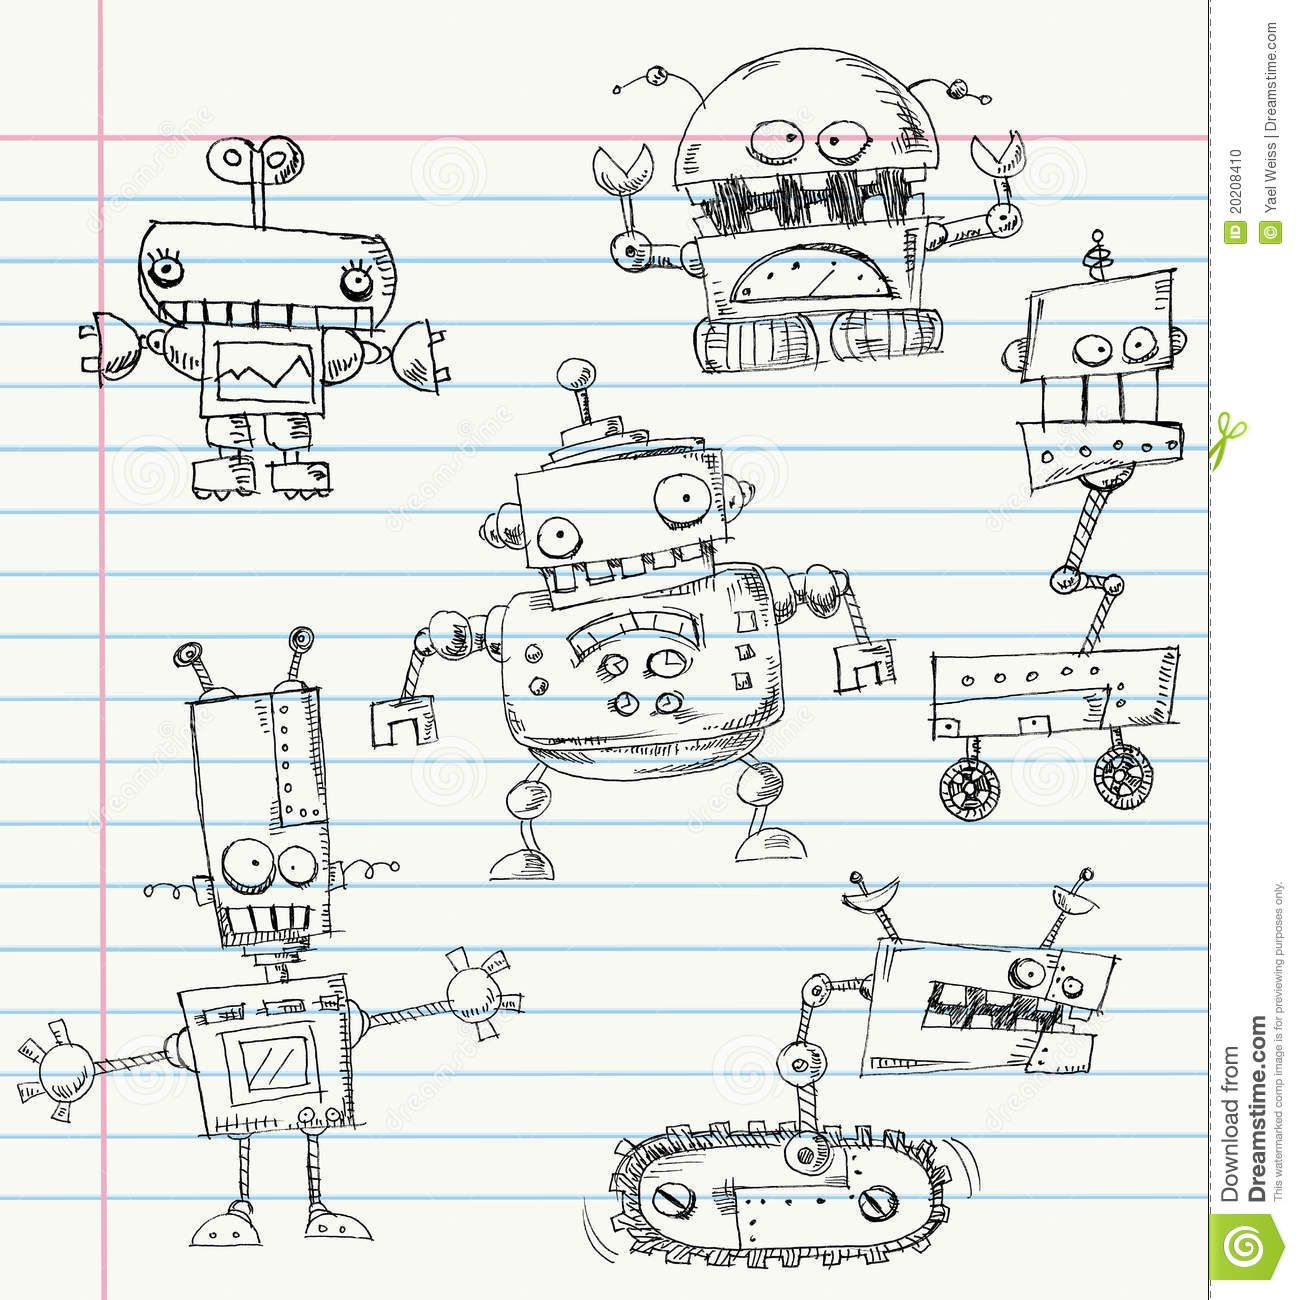 Robot Doodles - Download From Over 54 Million High Quality Stock Photos, Images, Vectors. Sign up for FREE today. Image: 20208410